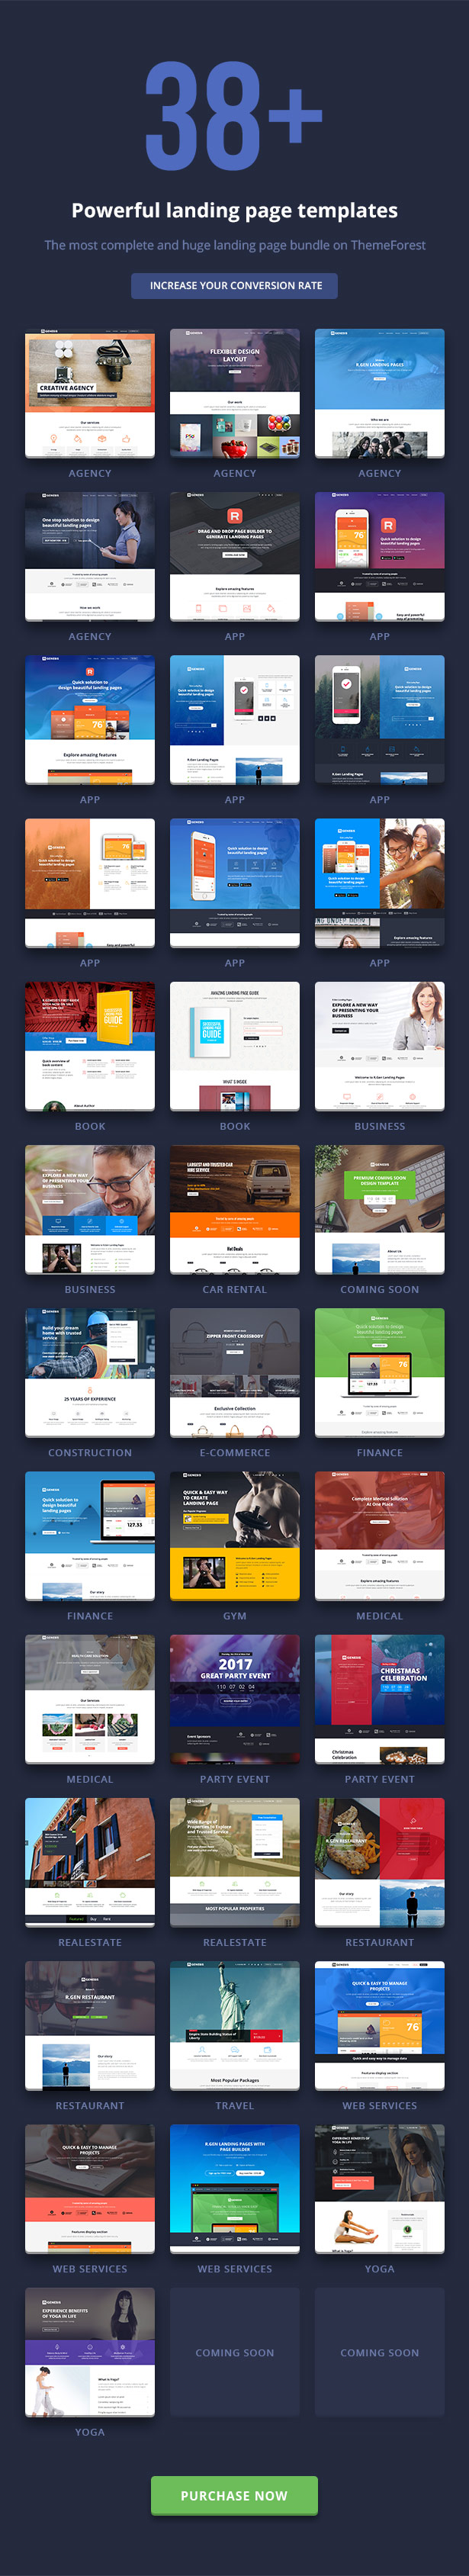 RGen | HTML Landing Pages with Builder - 28